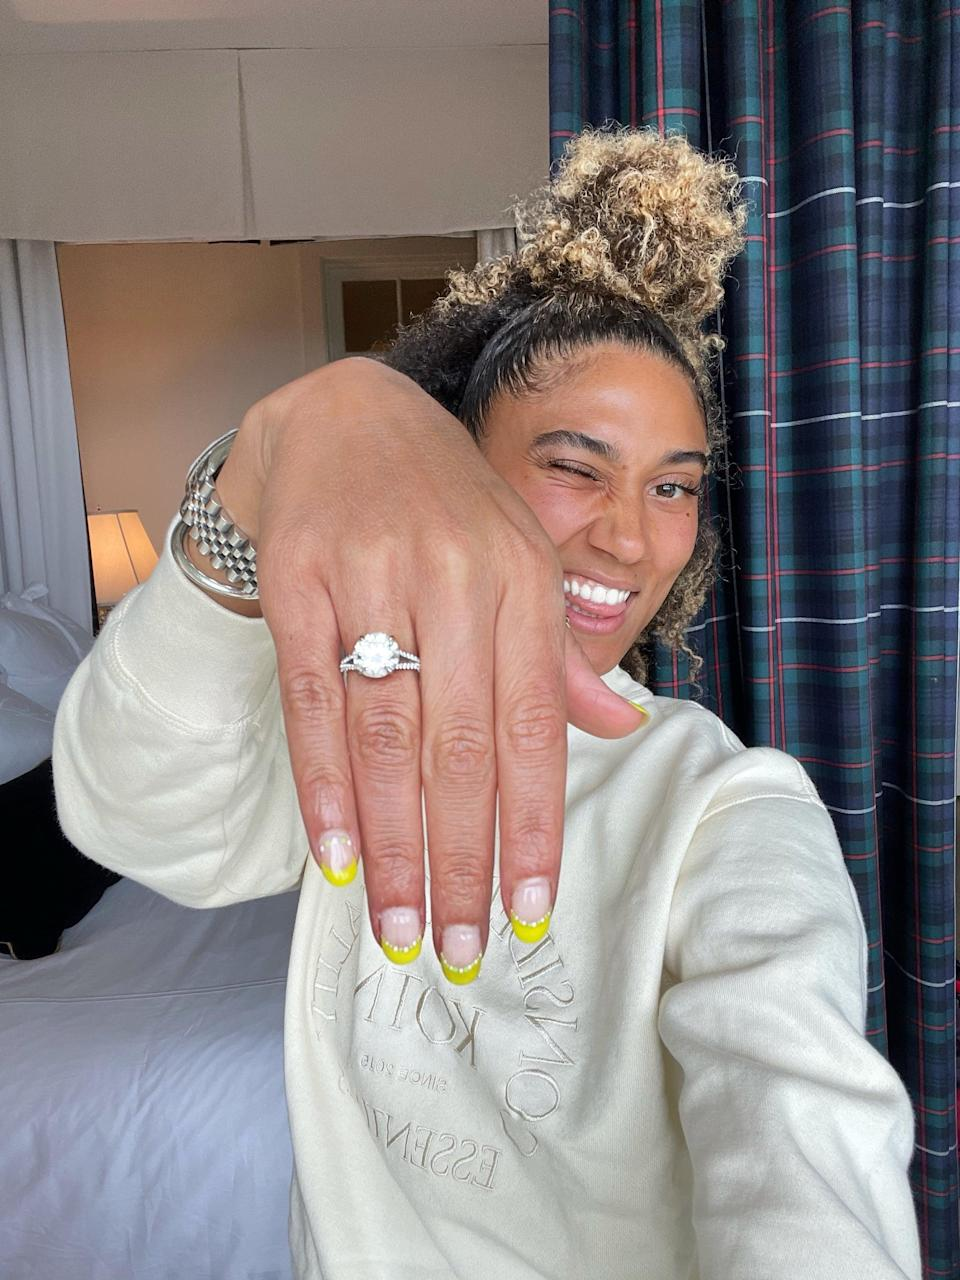 Peloton Instructor Ally Love Wears a New Sparkly Engagement Ring - but Will She Work Out in It?